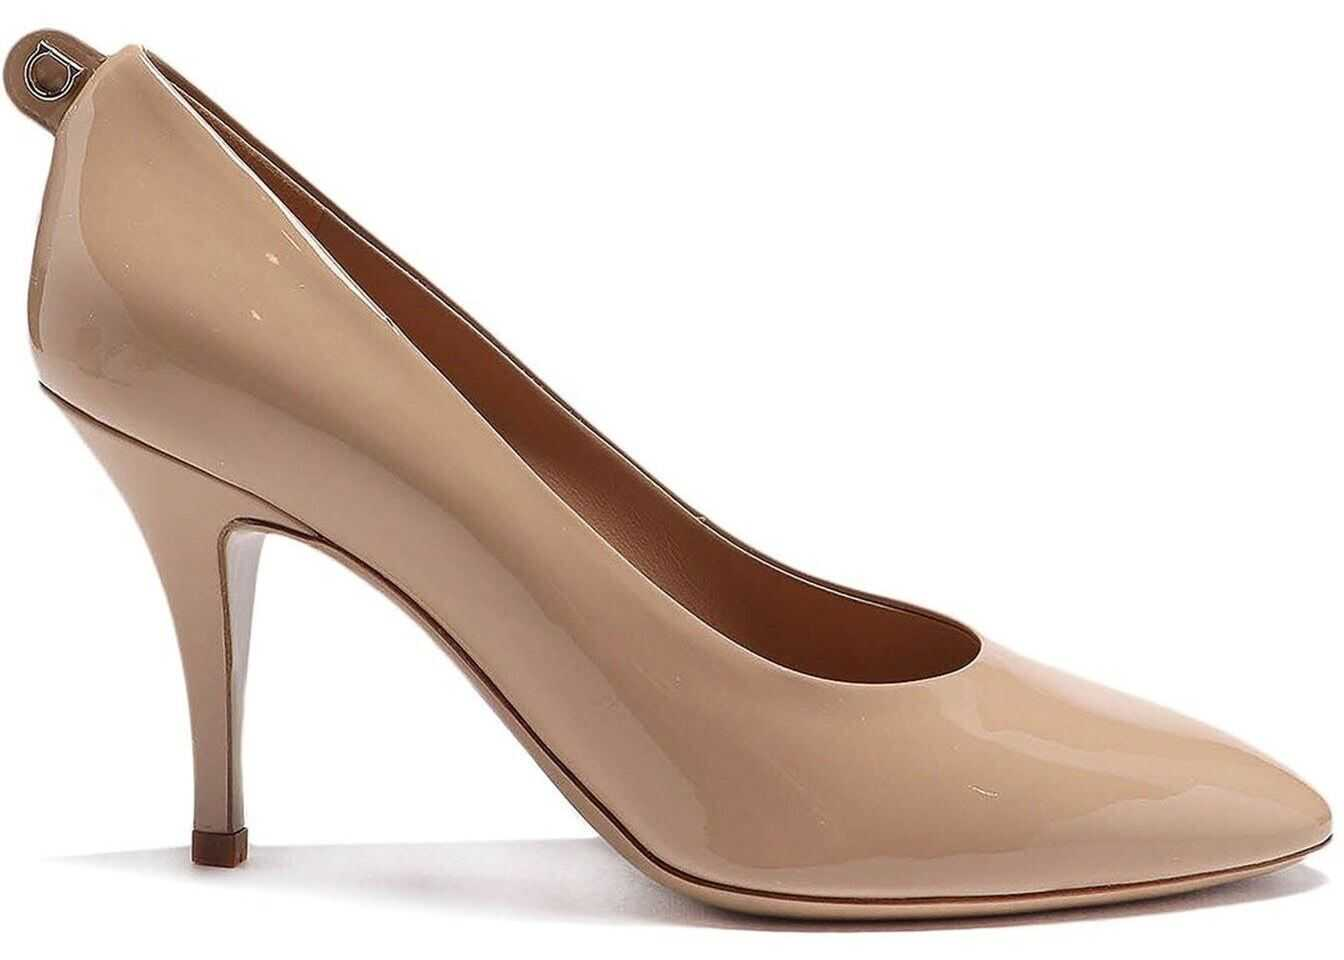 Salvatore Ferragamo Judy 85 Patent Leather Pumps Beige